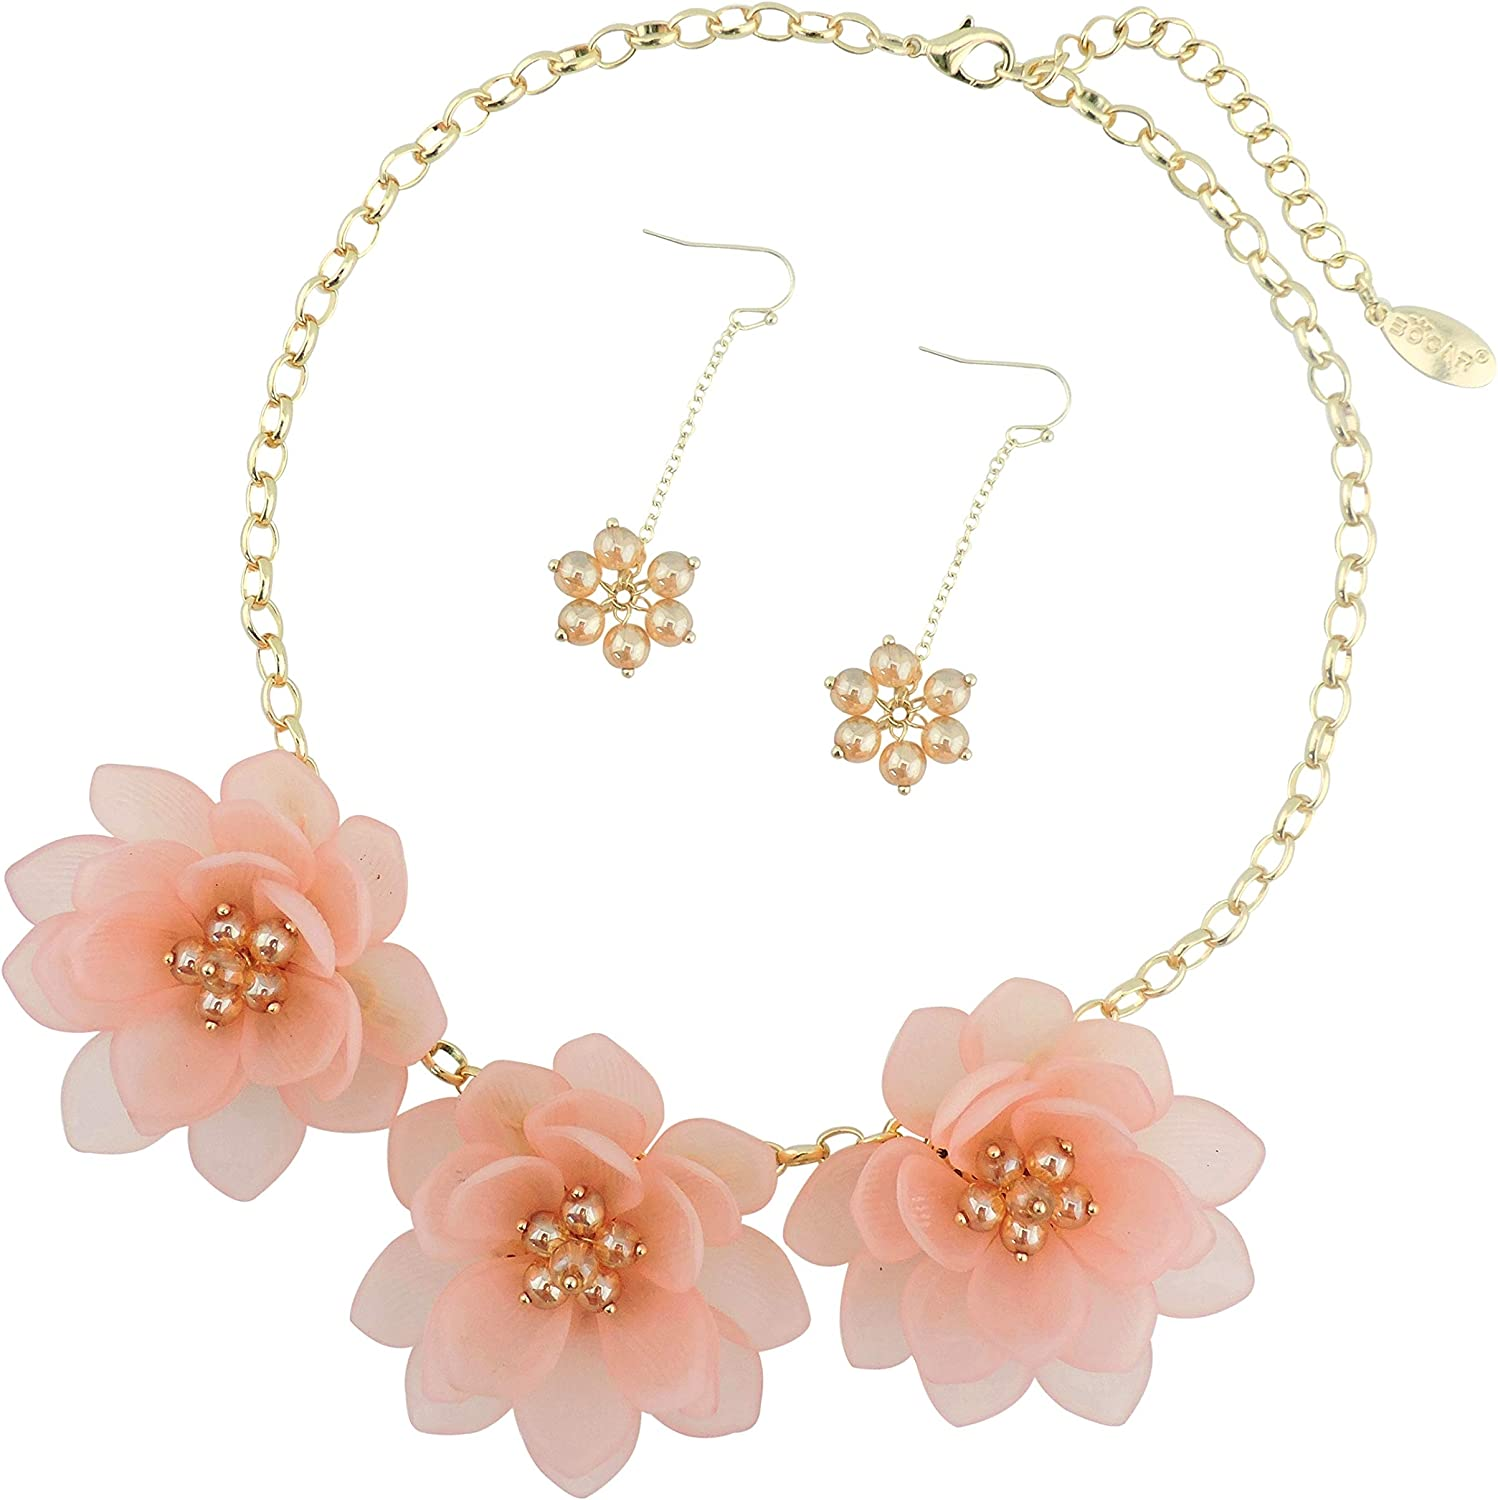 Bocar Bib Statement Pendant Dark Blue Flower Jewelry Set Necklace and Earrings for Women Gift (NK-10372) (Pink)